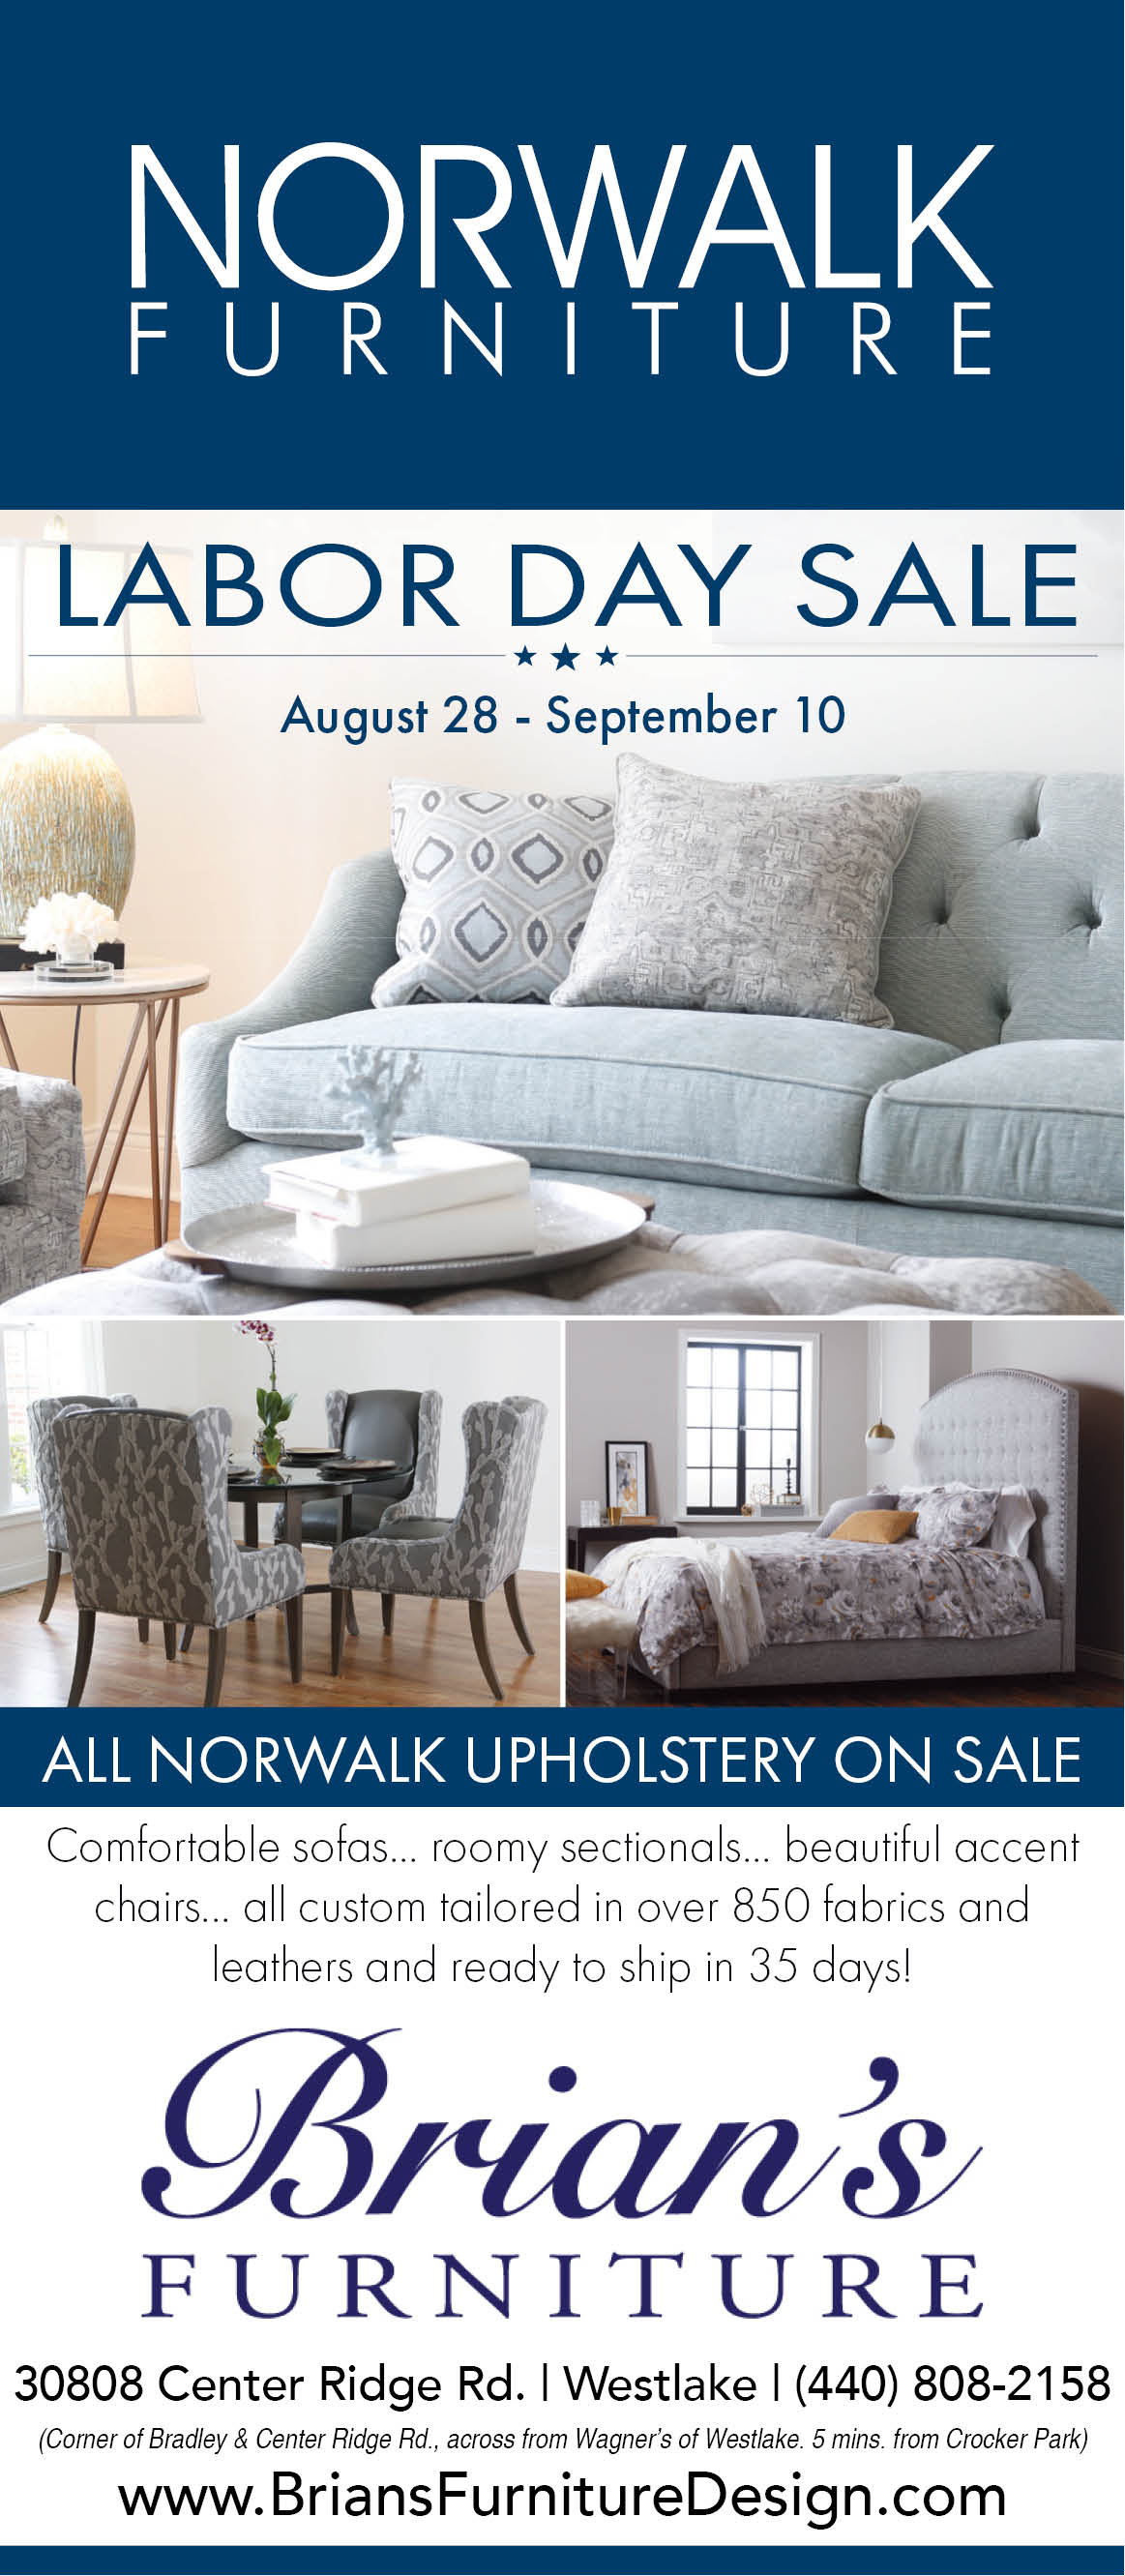 Brian S Furniture Norwalk Furniture Labor Day Sale Aug 28 Sept 10